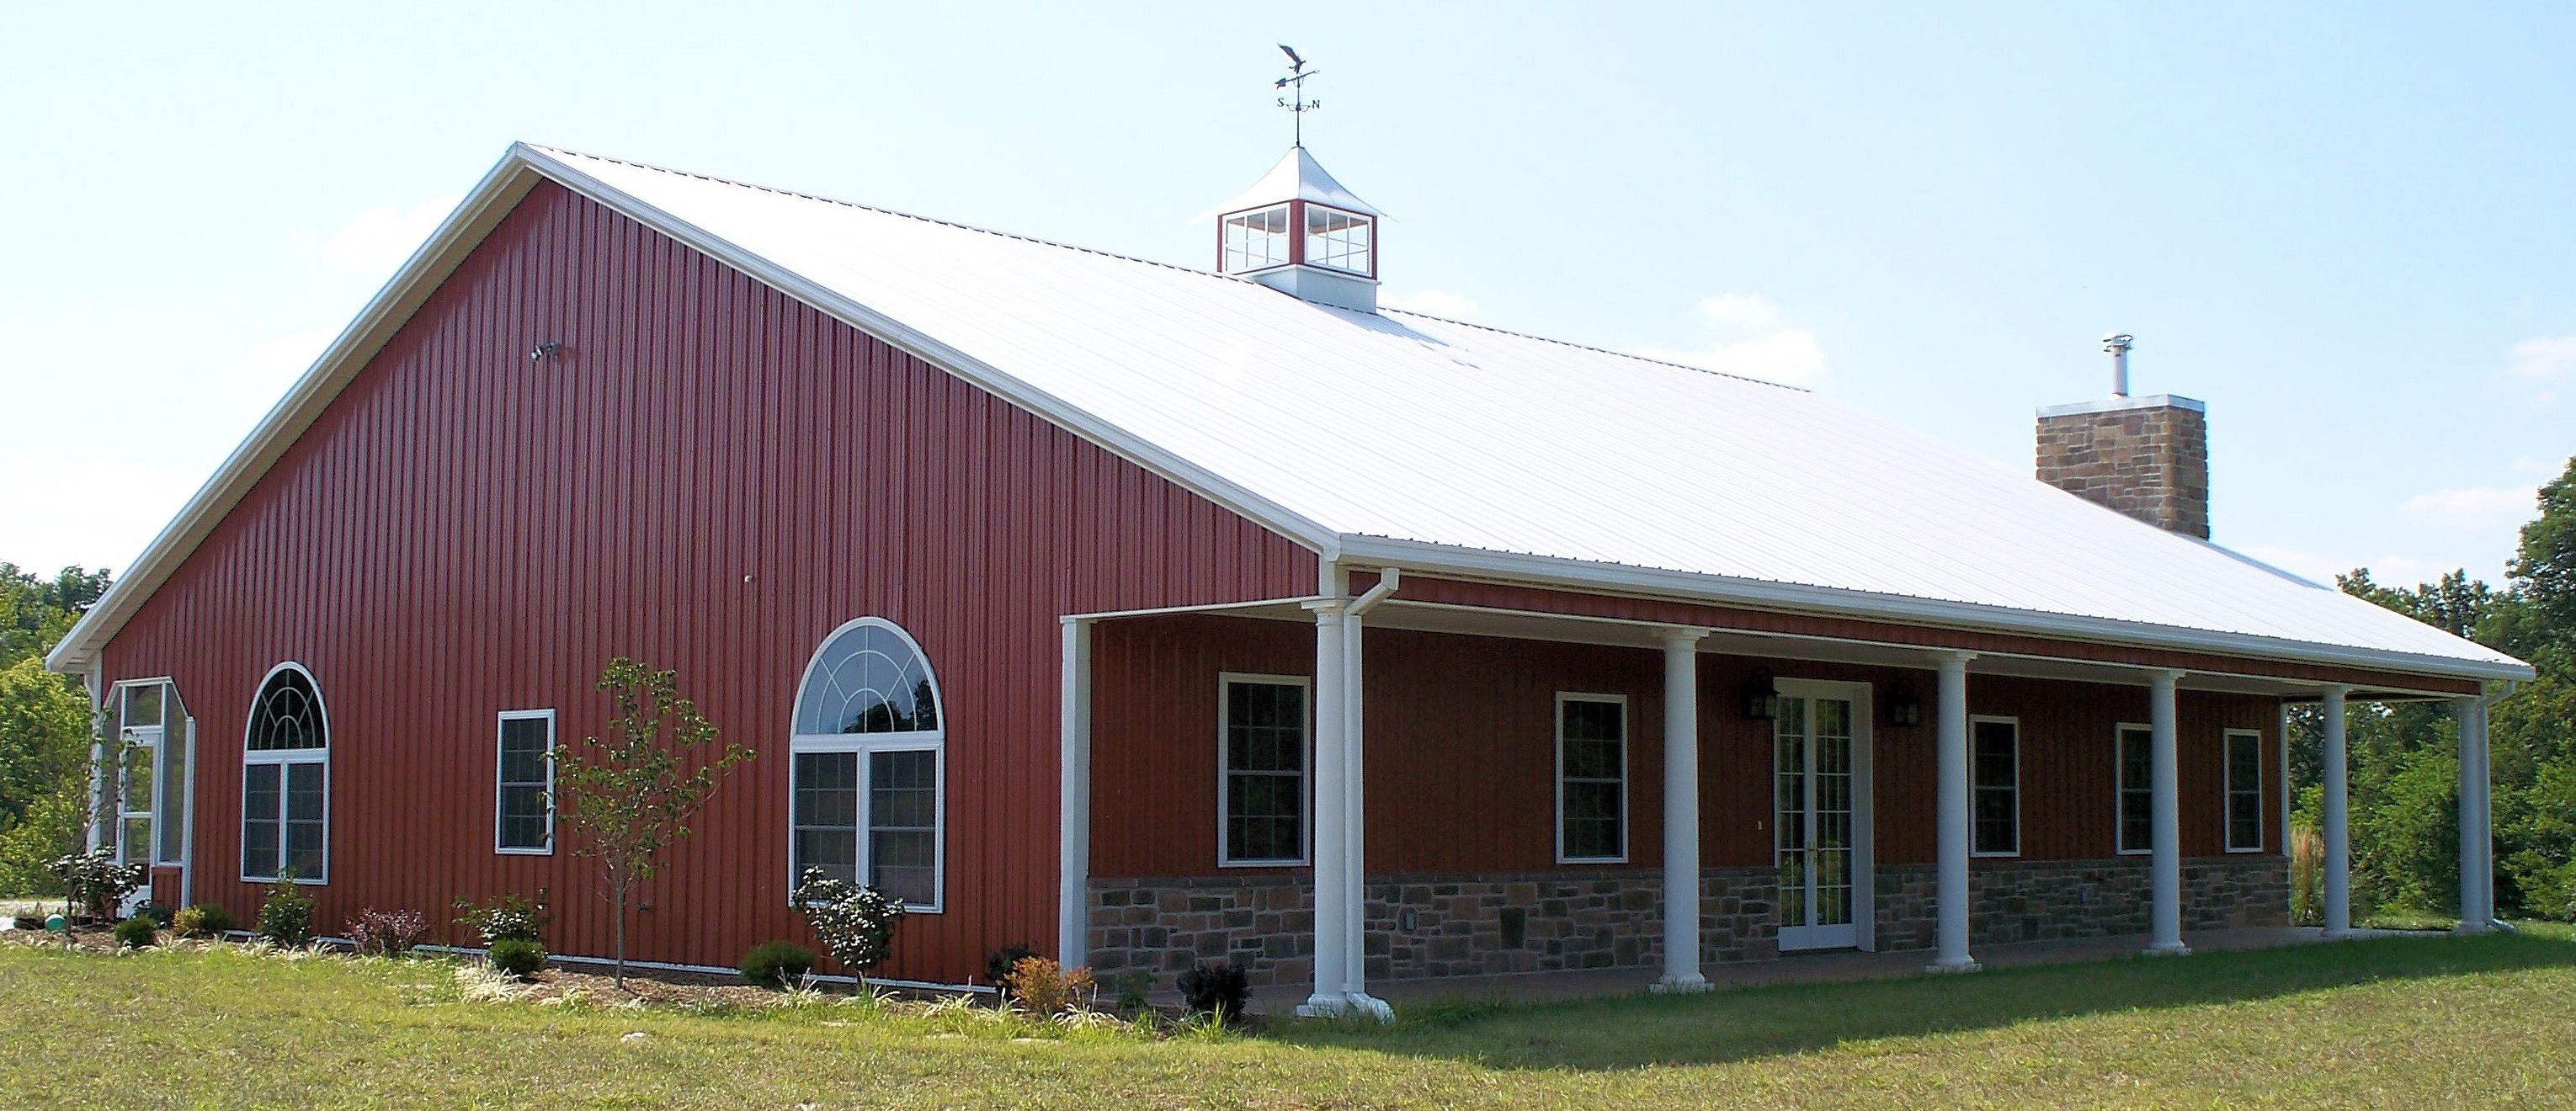 Metal building house pole barn homes pinterest Metal pole barn homes plans